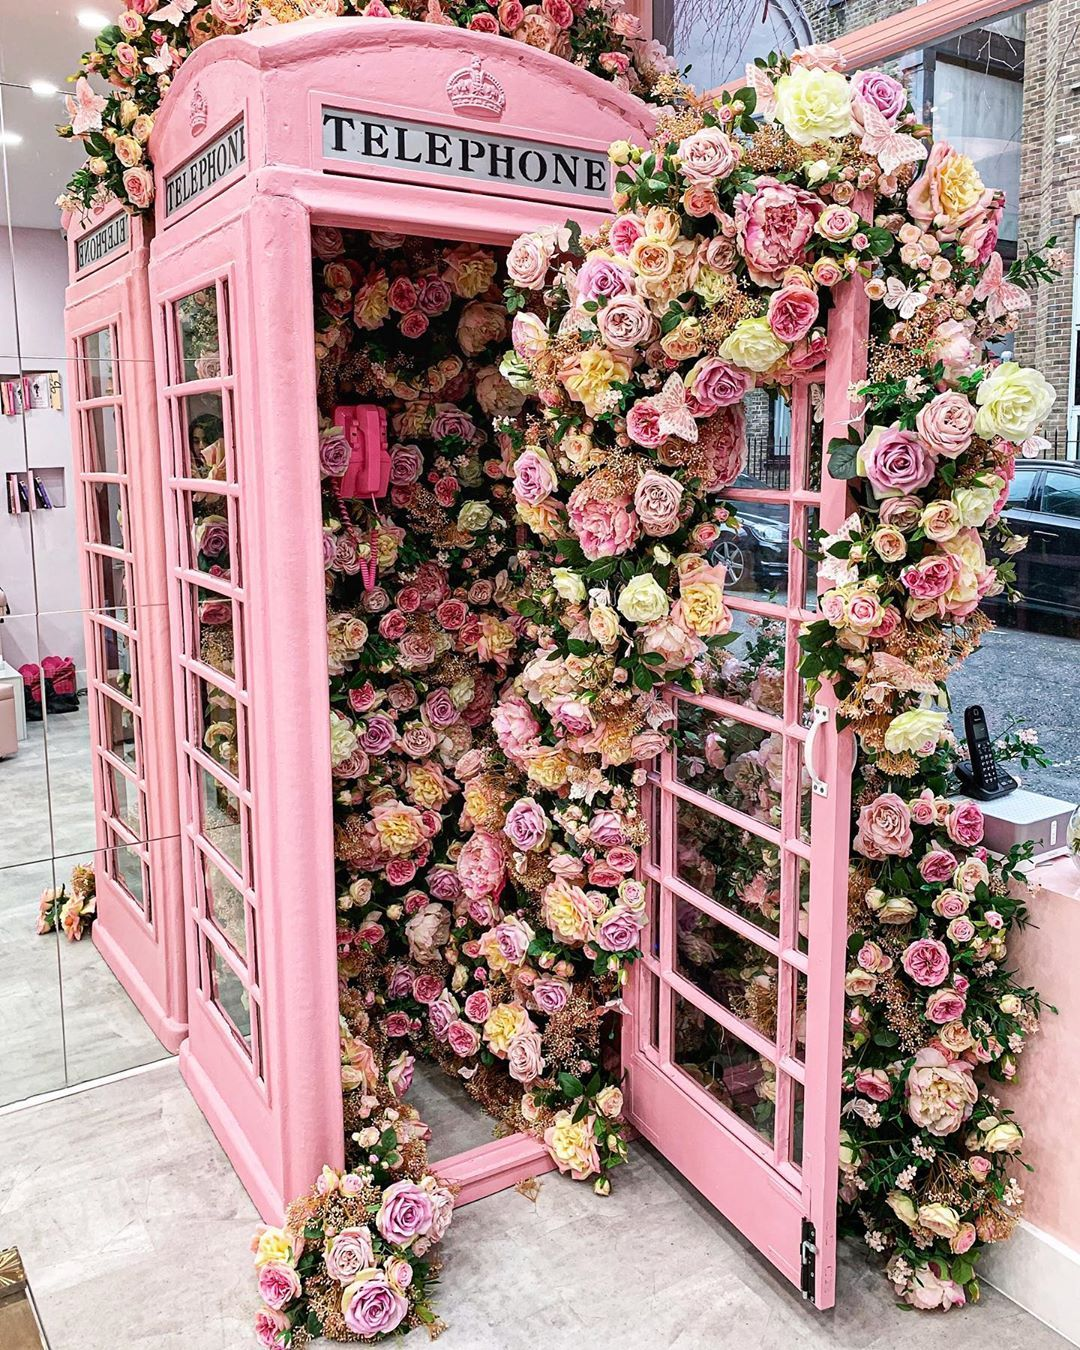 Gulshan On Instagram Ring Ring Wenaildit By Lola London In 2020 Pink Telephone Pretty In Pink Floral